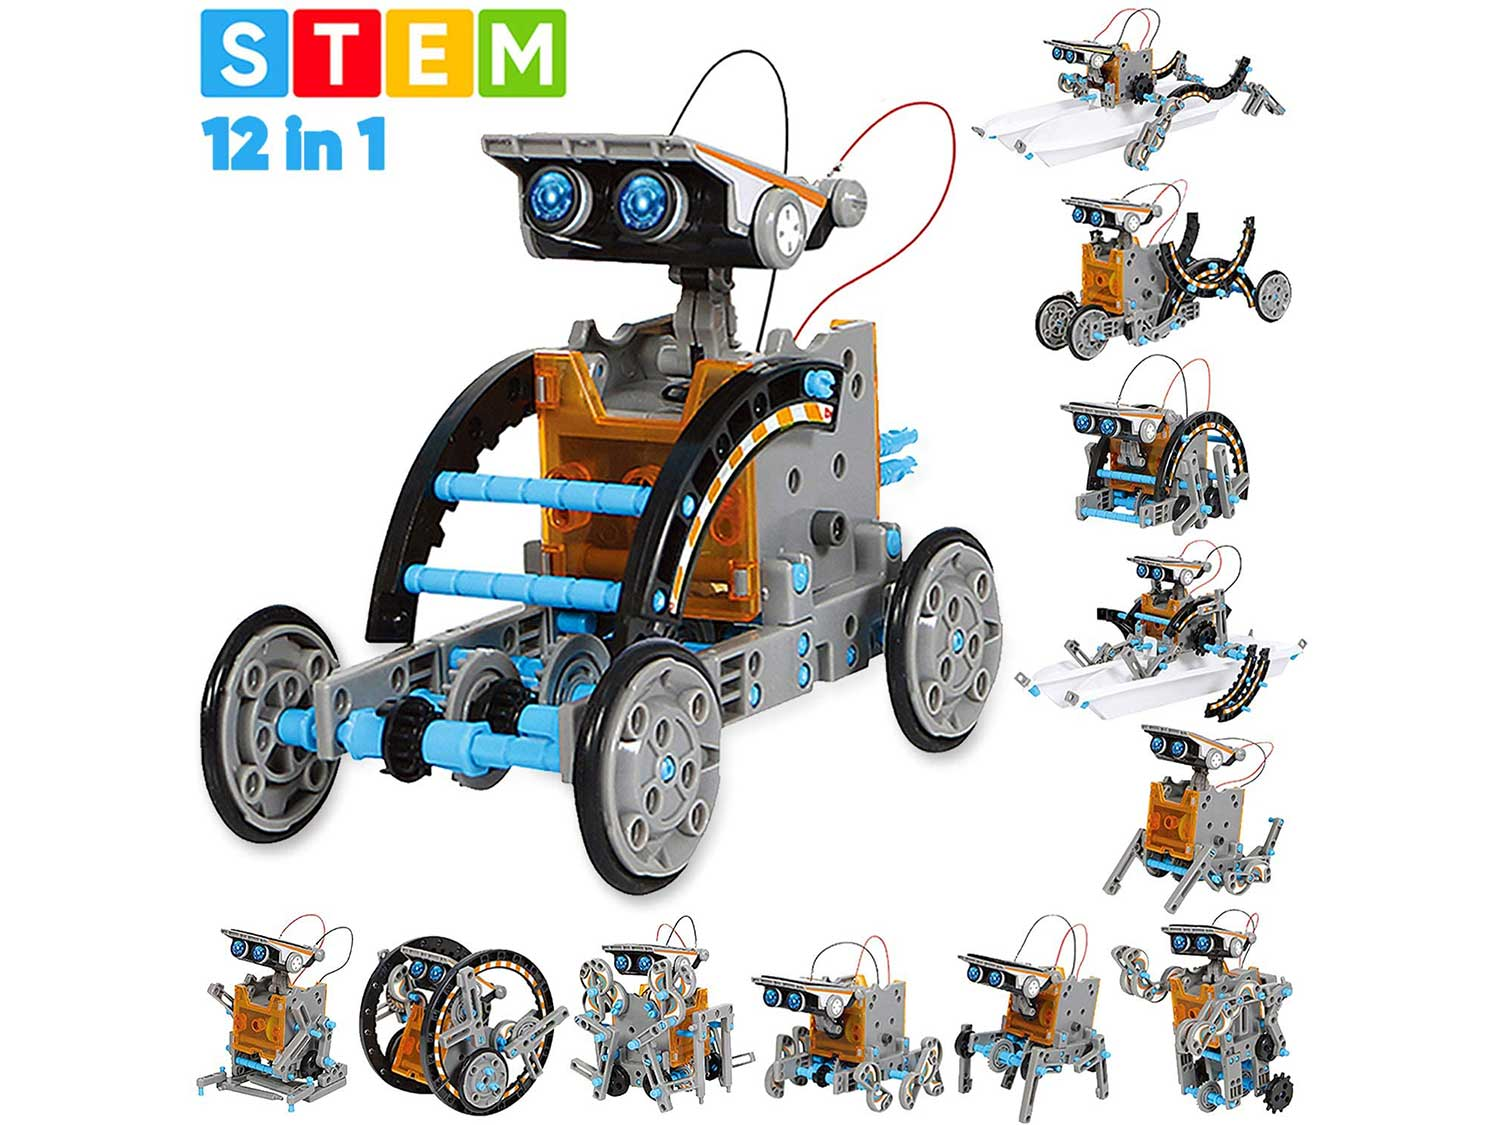 Sillbird STEM 12-in-1 Education Solar Robot Toys -190 Pieces DIY Building Science Experiment Kit for Kids Aged 8-10 and Older,Solar Powered by The Sun